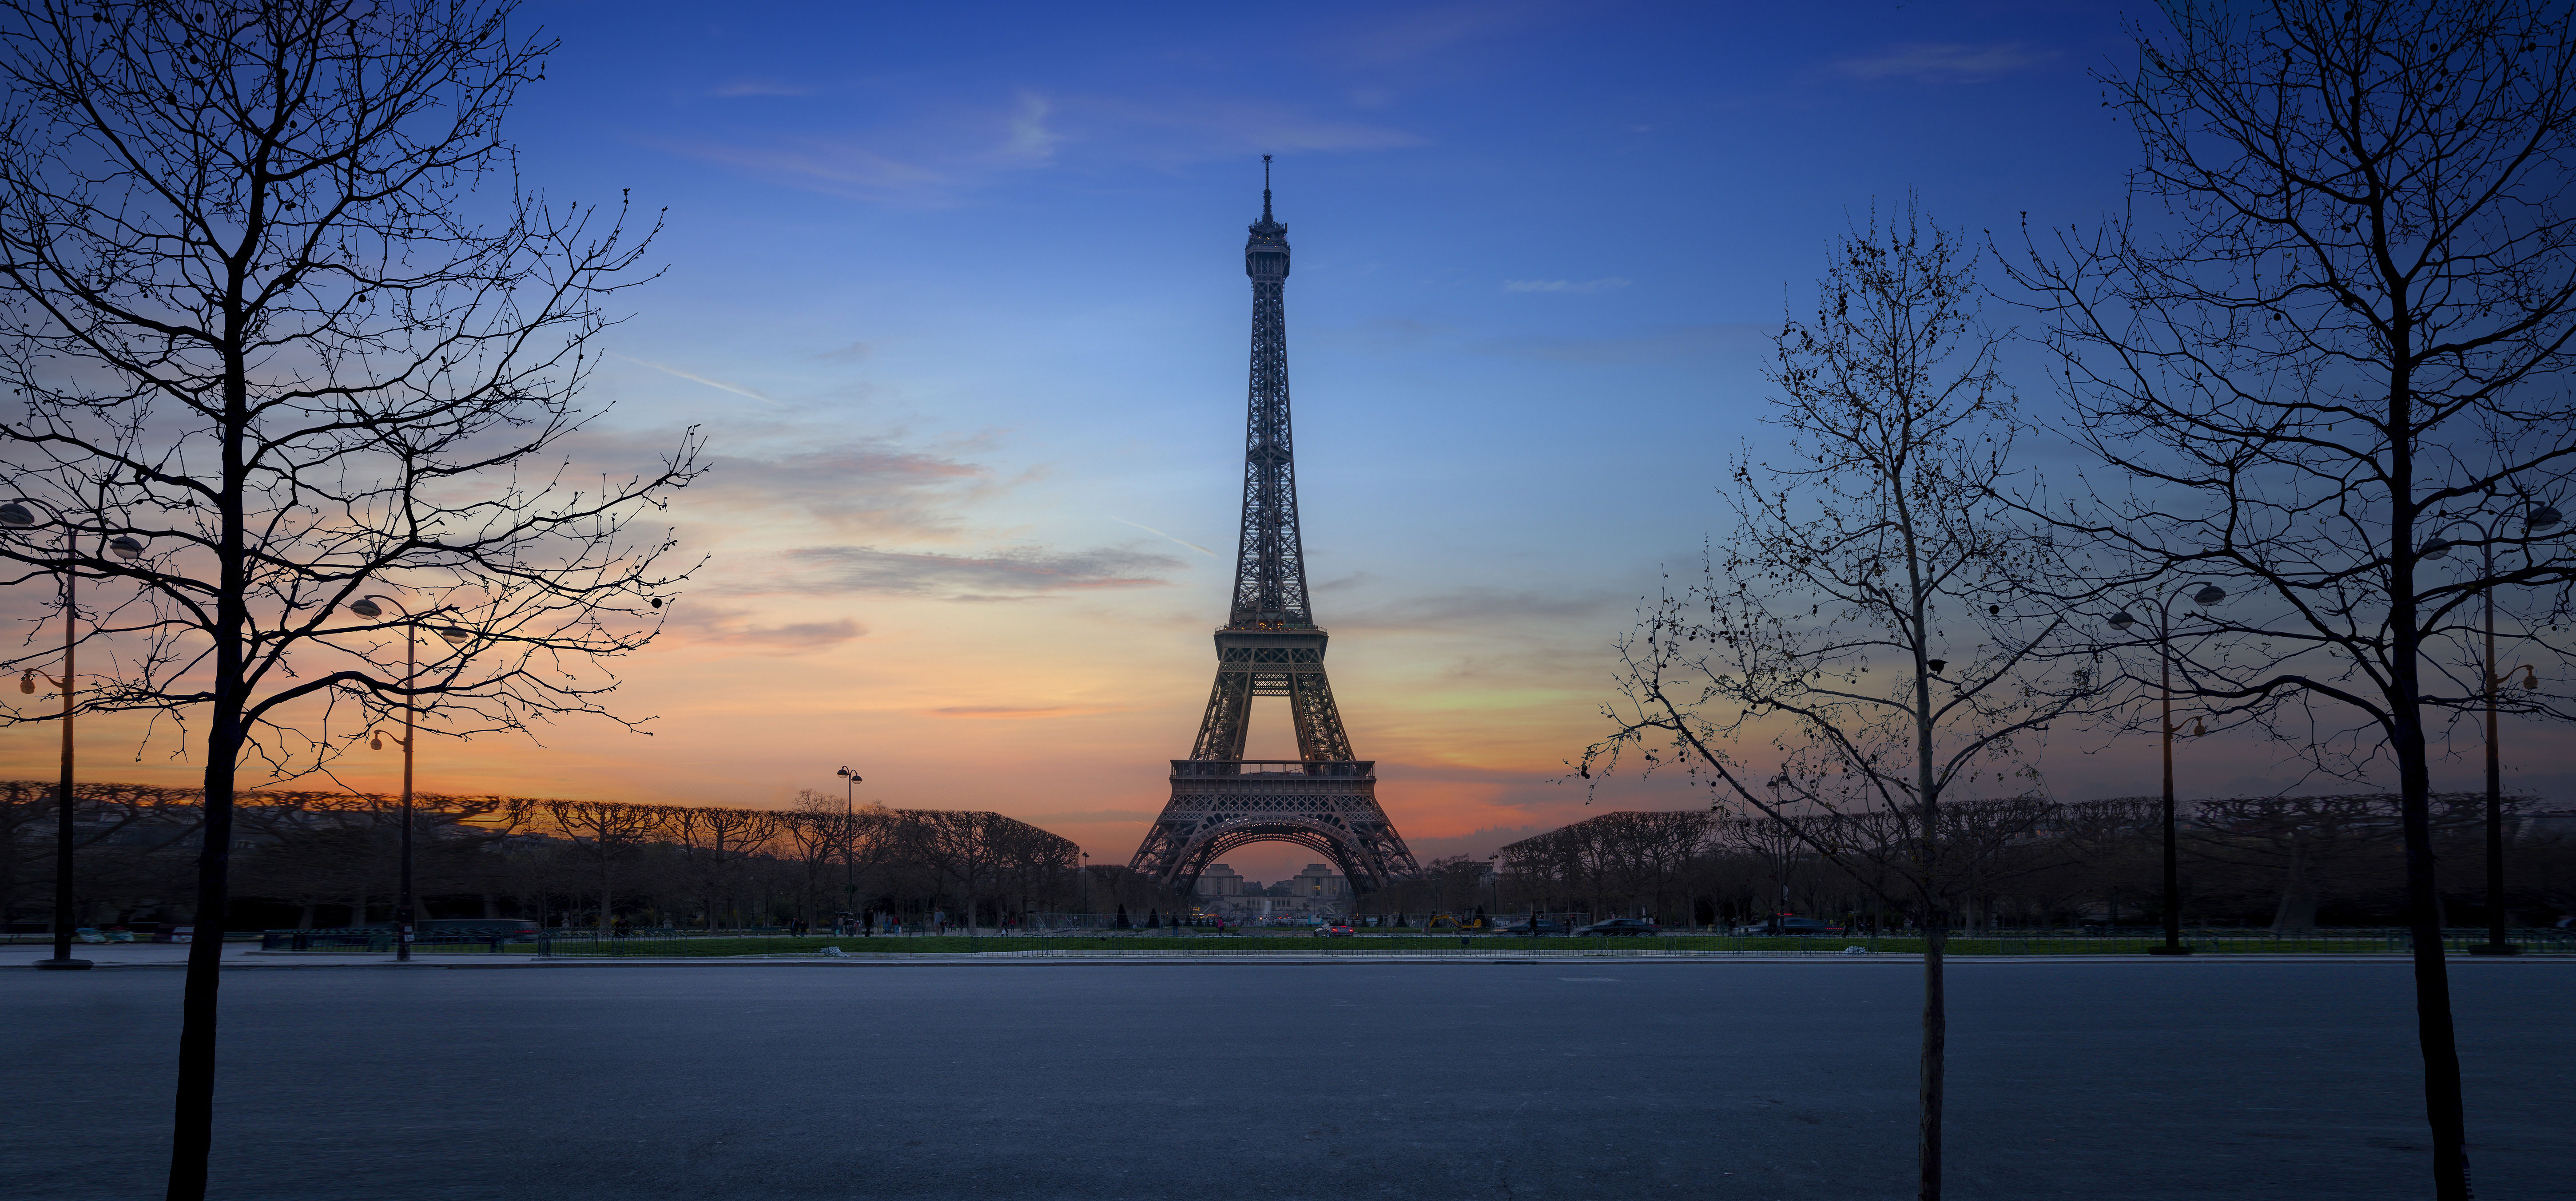 Eiffel tower paris hd world 4k wallpapers images - Paris eiffel tower desktop wallpaper ...